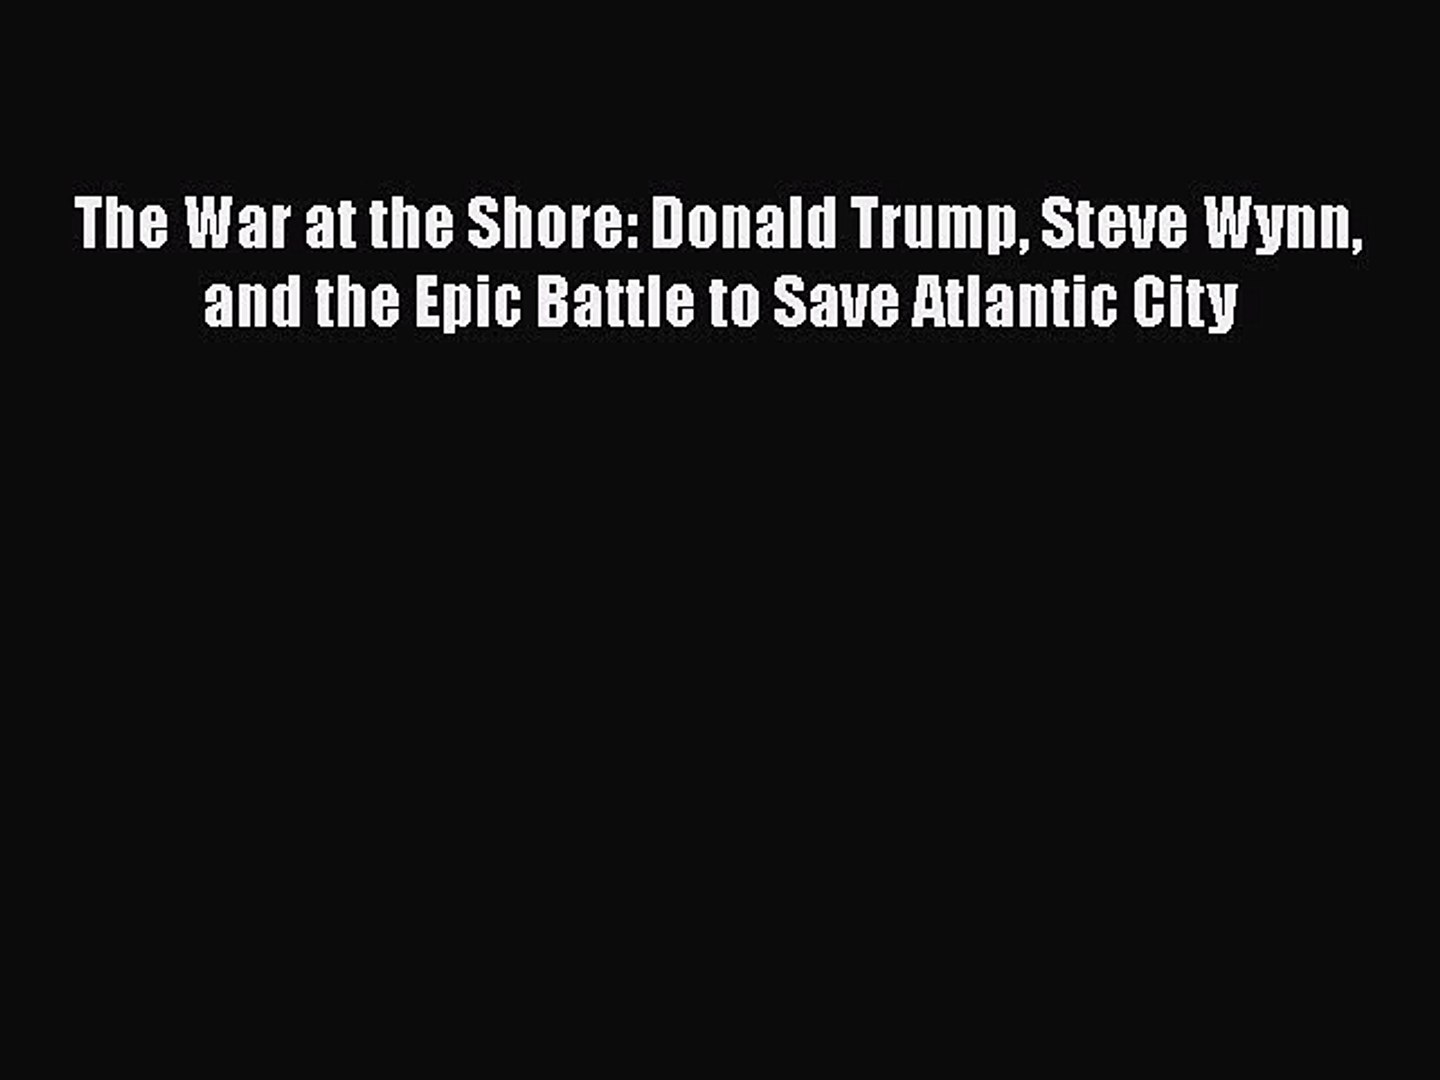 PDF Download The War at the Shore: Donald Trump Steve Wynn and the Epic Battle to Save Atlantic